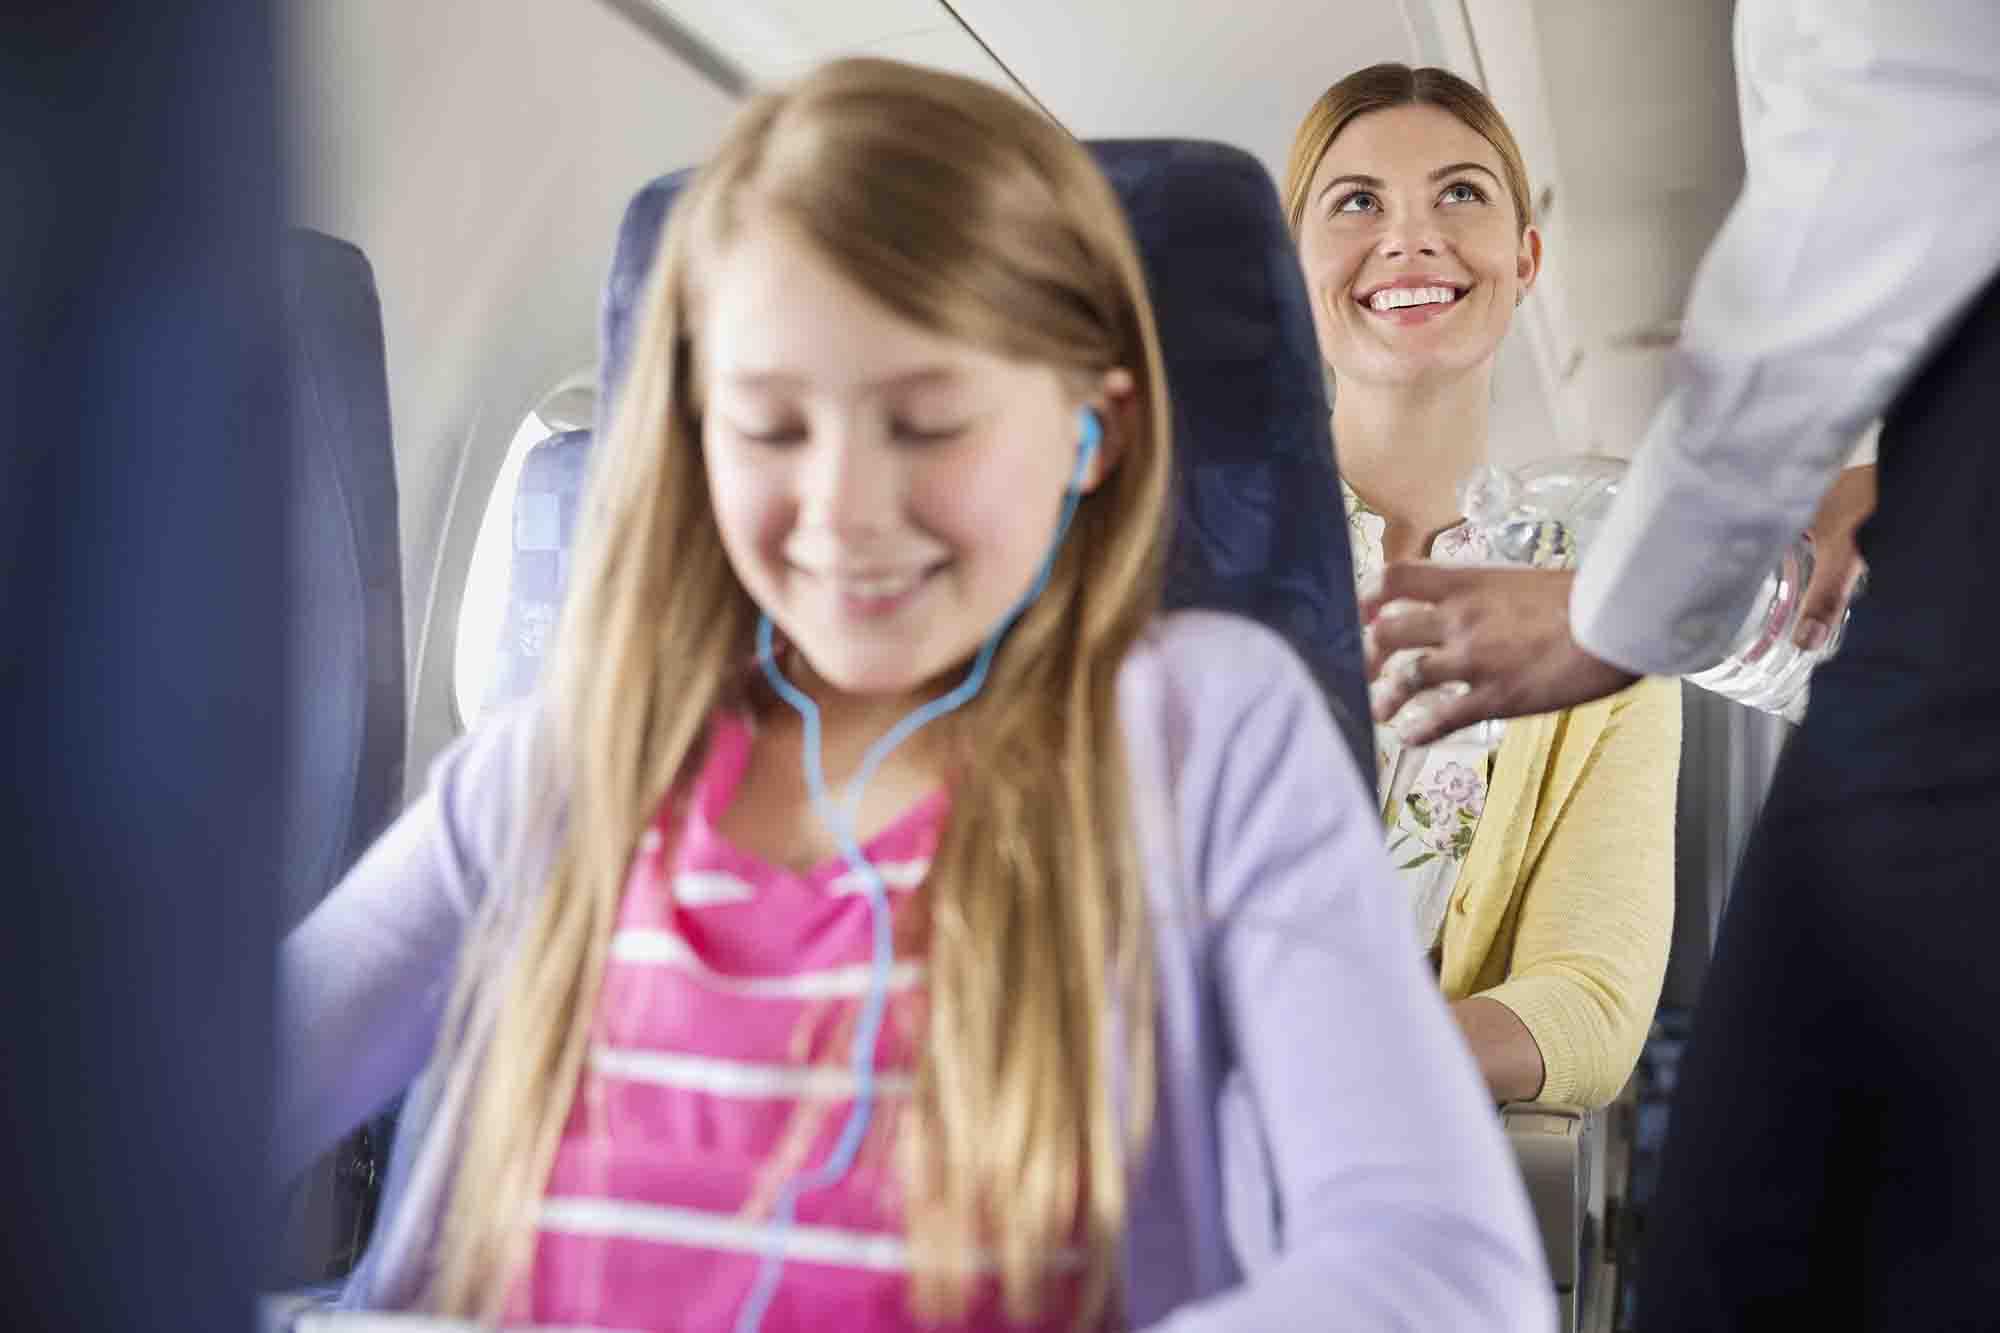 Drink water while flying to avoid dehydration